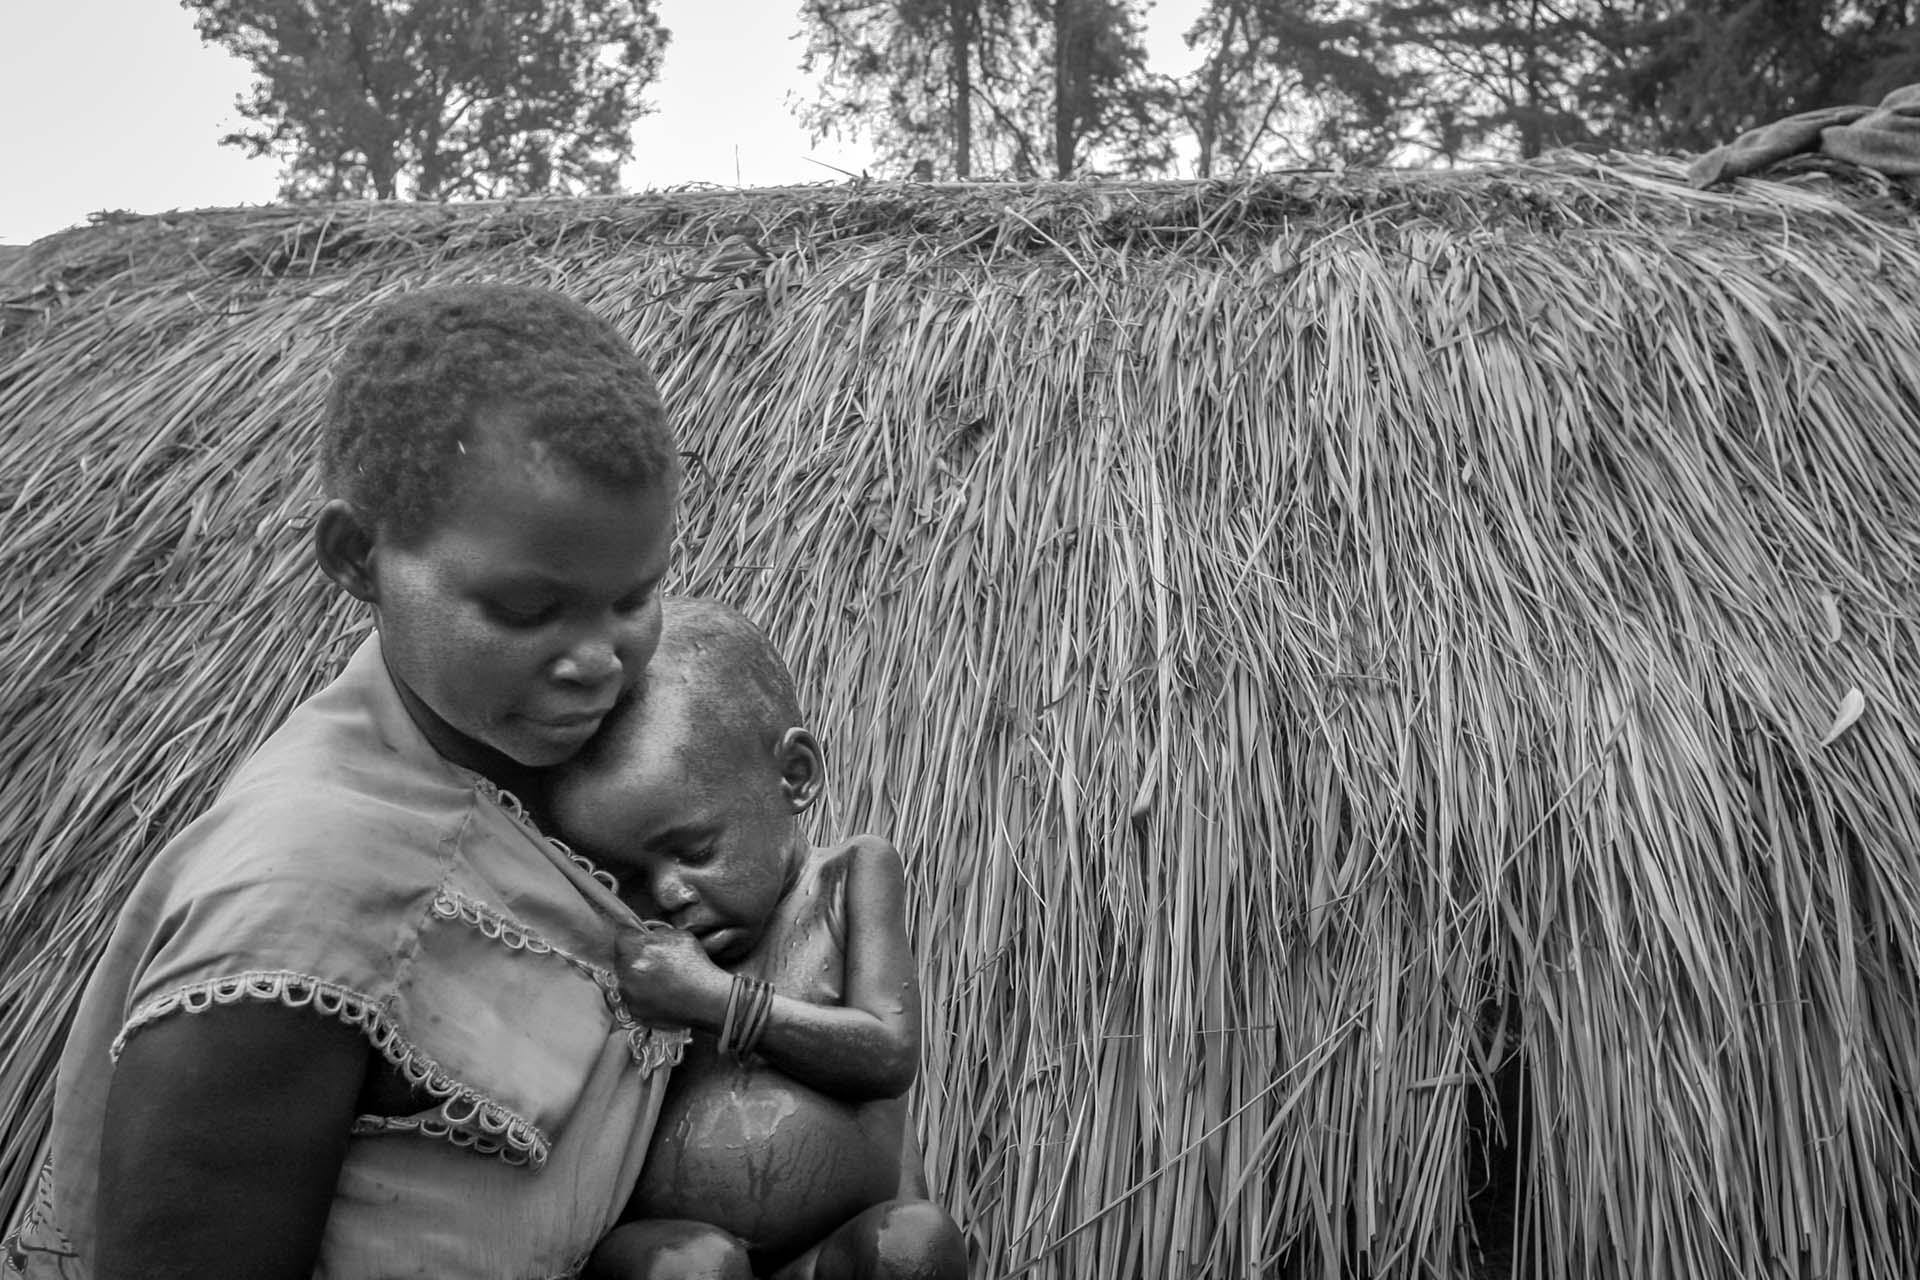 A mother tries to comfort her malnourished child at IDP camp in the village of Gety.